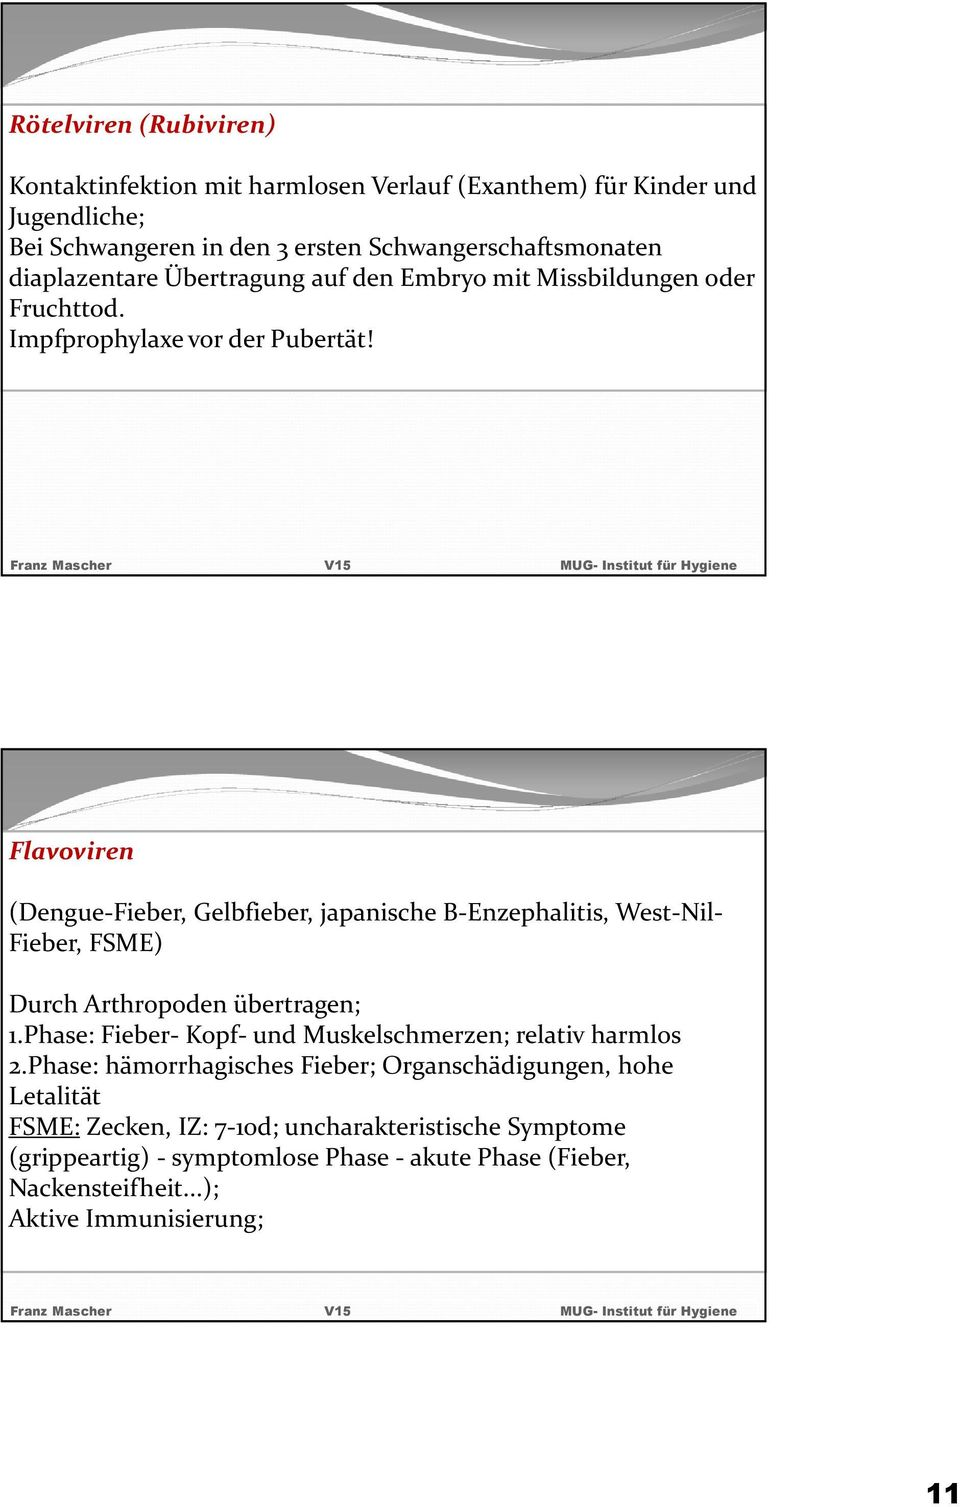 rki.de Homepage des Robert-Koch-Institutes - PDF